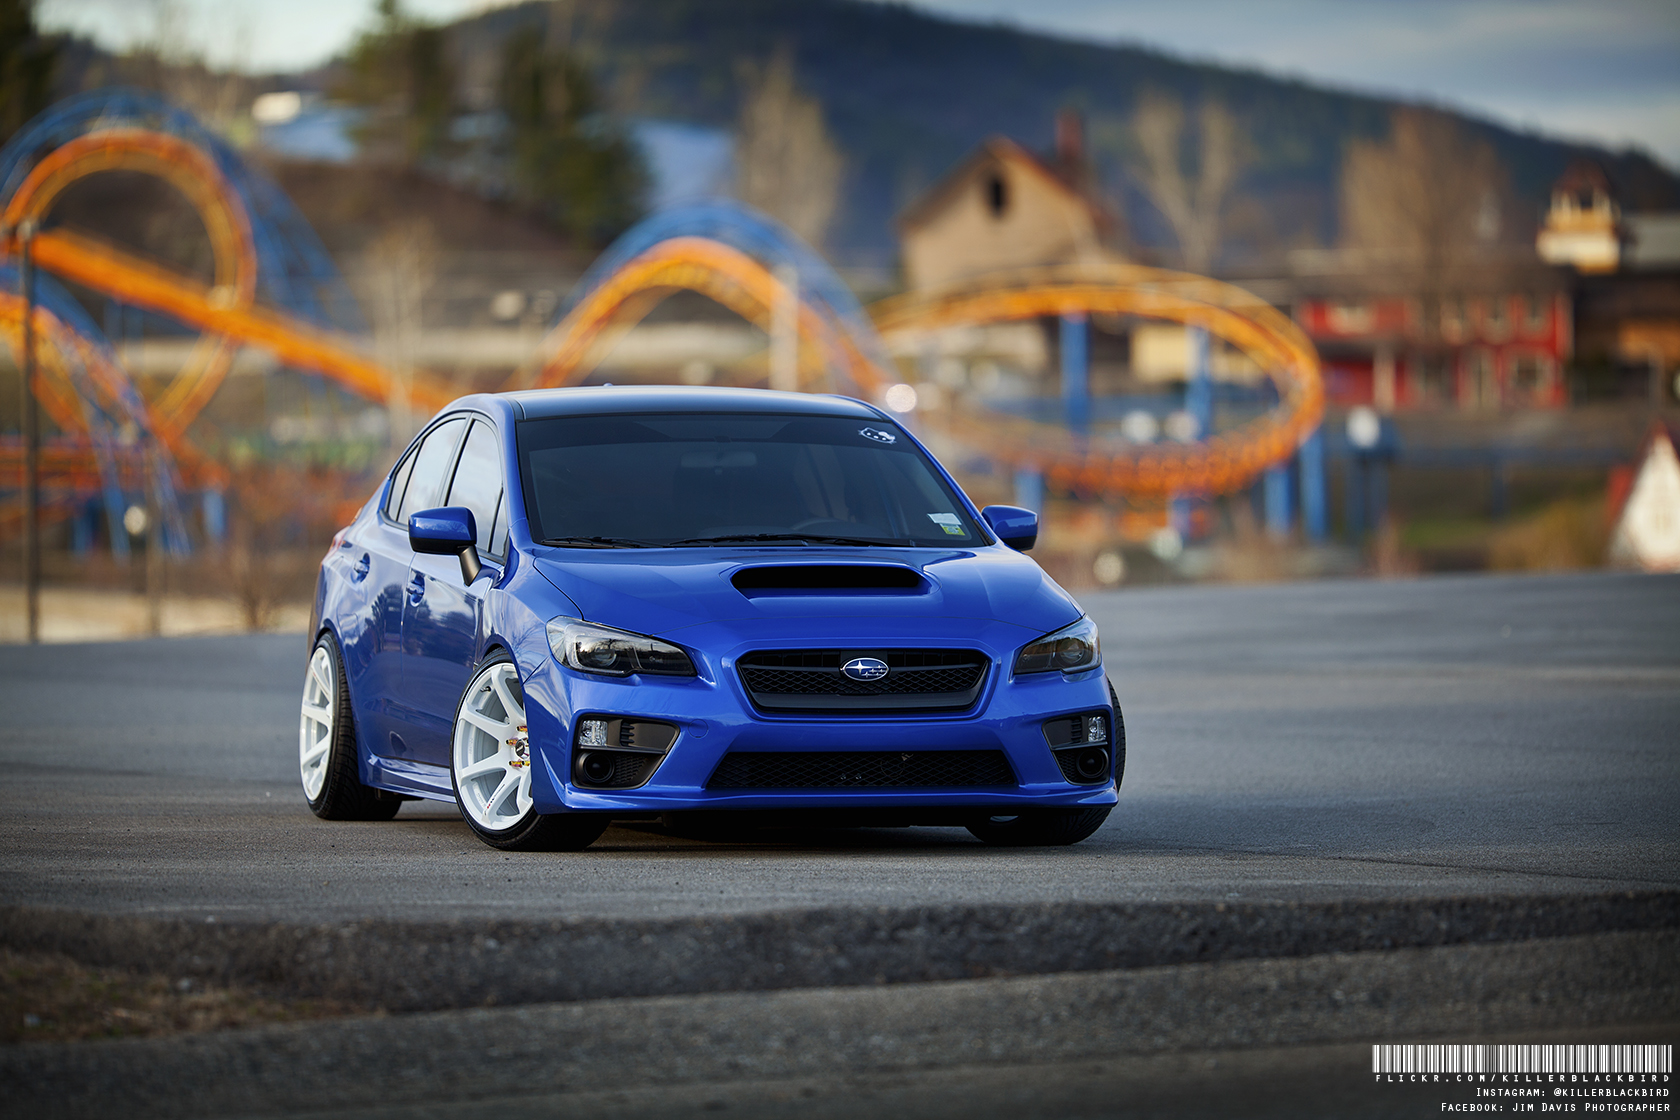 The 2015 2016 Subaru Wrx Sti Pic Thread Part 1 Page 122 Nasioc